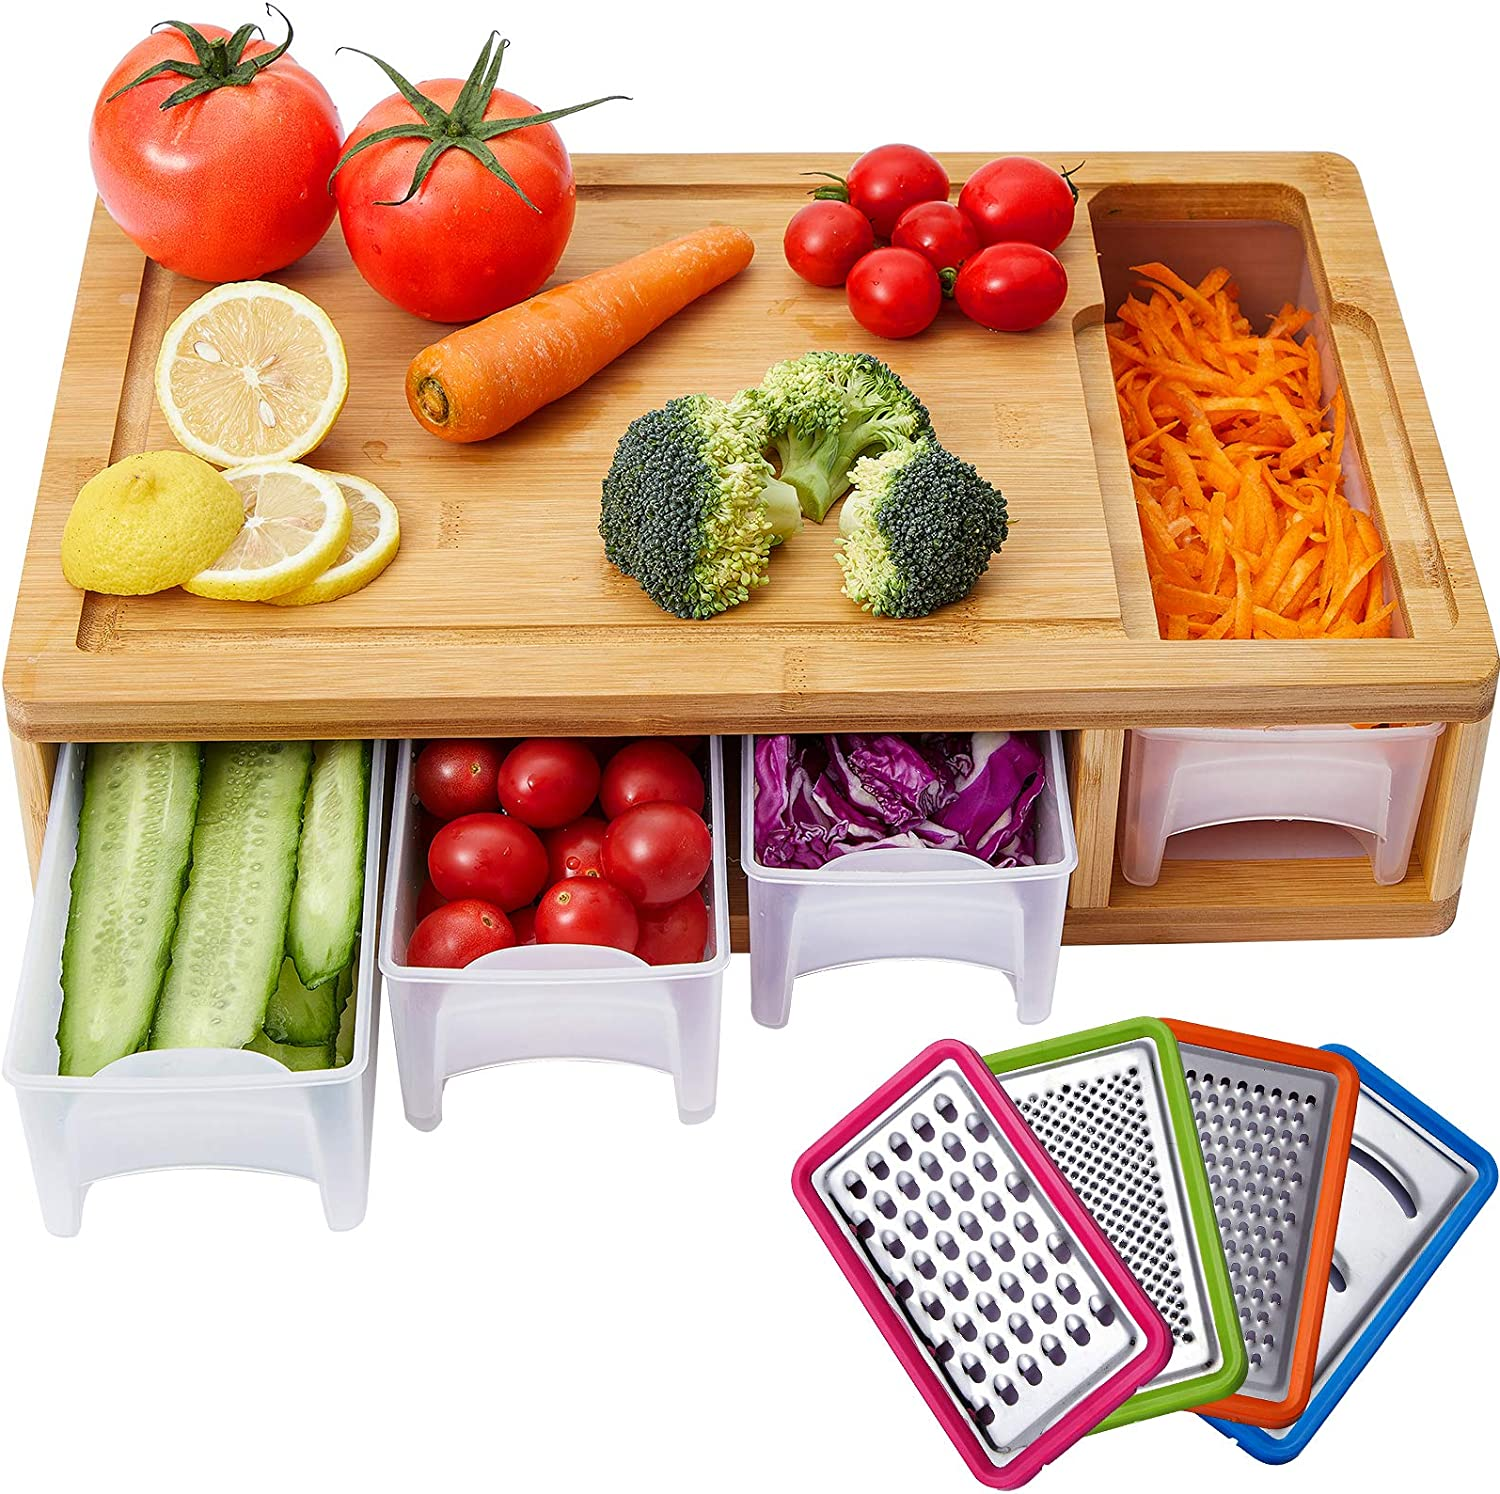 Large Nippon regular agency Kitchen Bamboo Cutting Board Transpa Trays Containers with Raleigh Mall